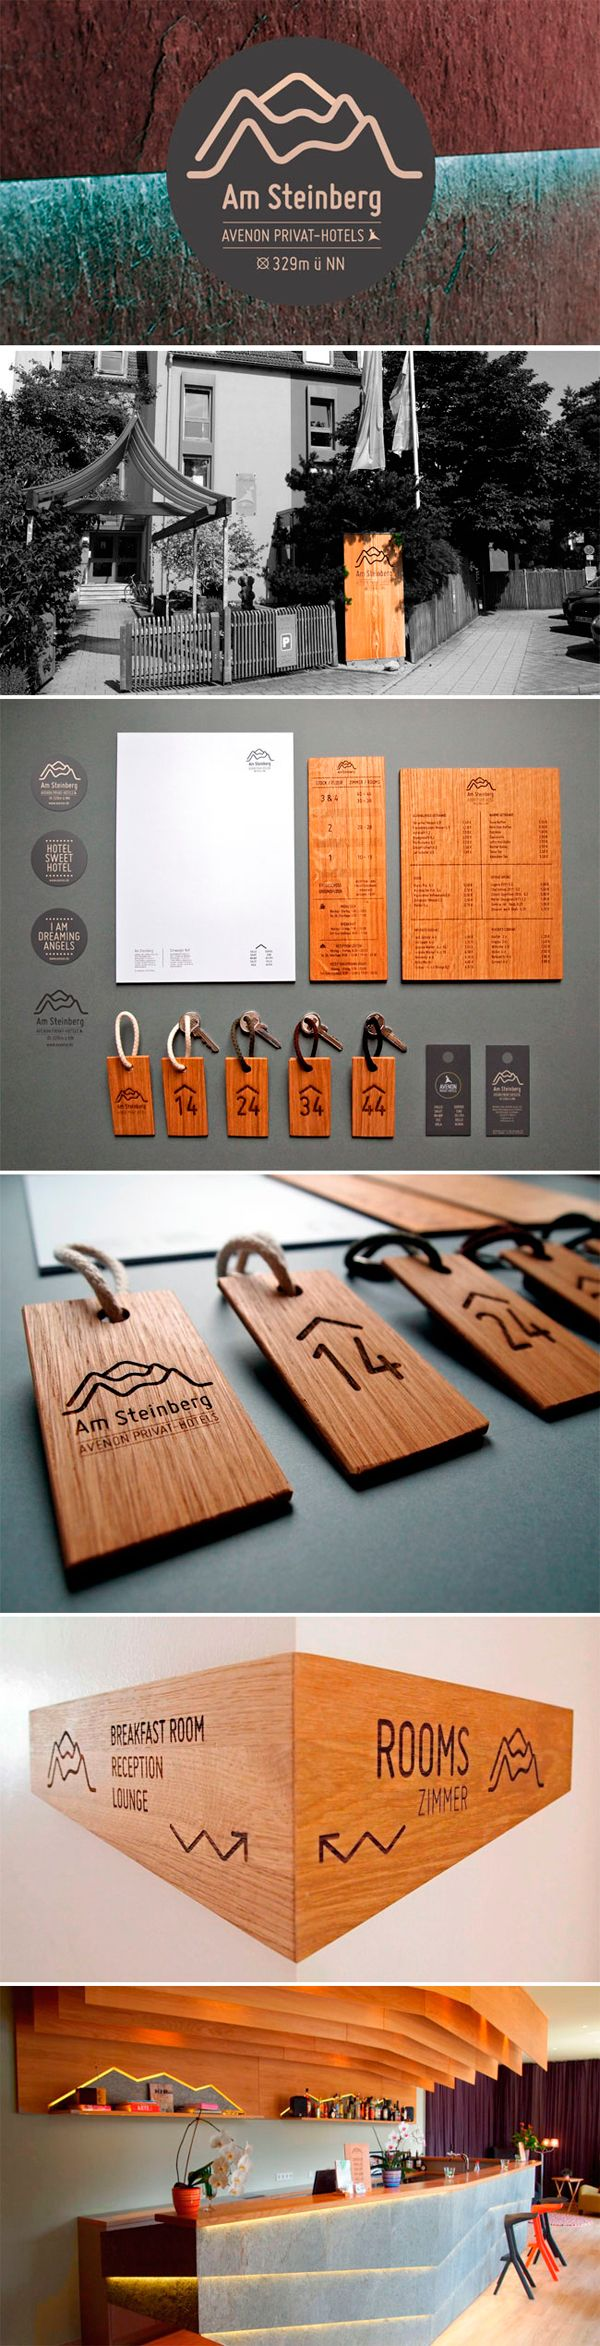 Am Steinberg Hotel - love the use of wood in this #stationery design